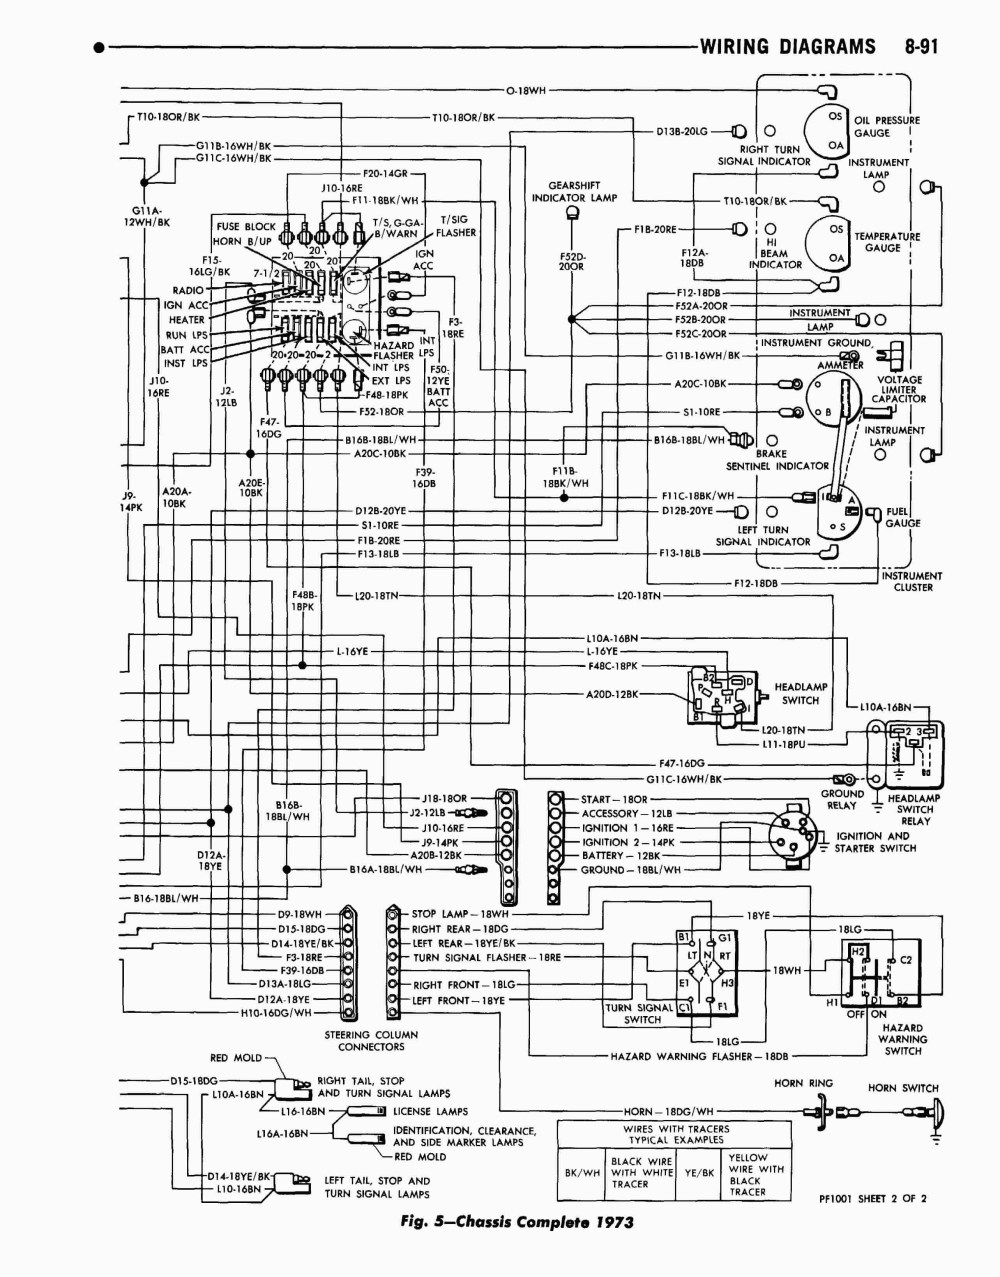 medium resolution of 2002 wildcat rv wiring diagram wiring diagram portal rh 4 19 3 kaminari music de forest